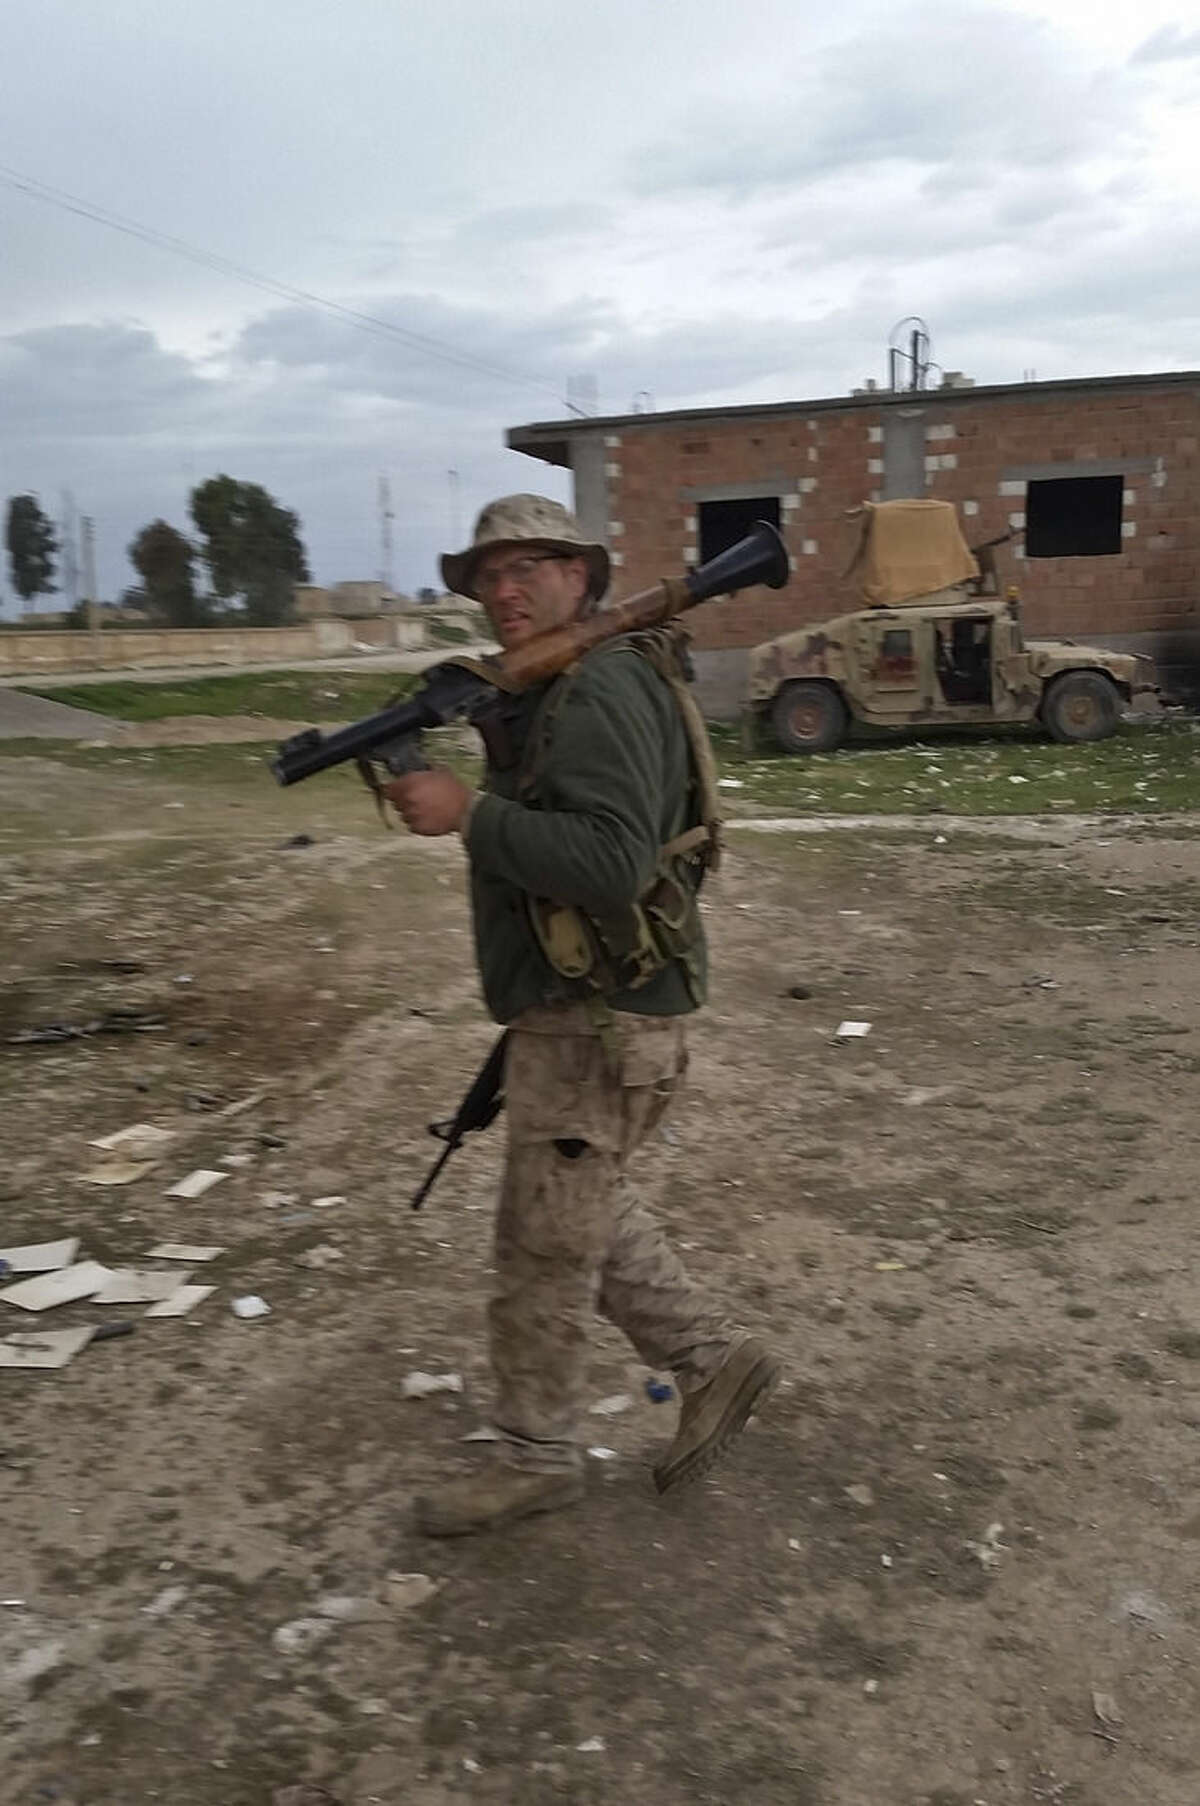 In this March 12, 2015 photo Jamie Lane, 29, an American veteran originally from Mt. Pleasant Michigan, carries a rocket-propelled grenade during fighting alongside Kurdish militiamen against Islamic State militants in Tel Tamr, Syria. Lane is among growing number of Iraq war veterans returning to the battlefield, this time without the American military, to join in the fight against the Sunni militants who now hold territory in a third of Iraq and Syria. (Courtesy Jamie Lane via AP)